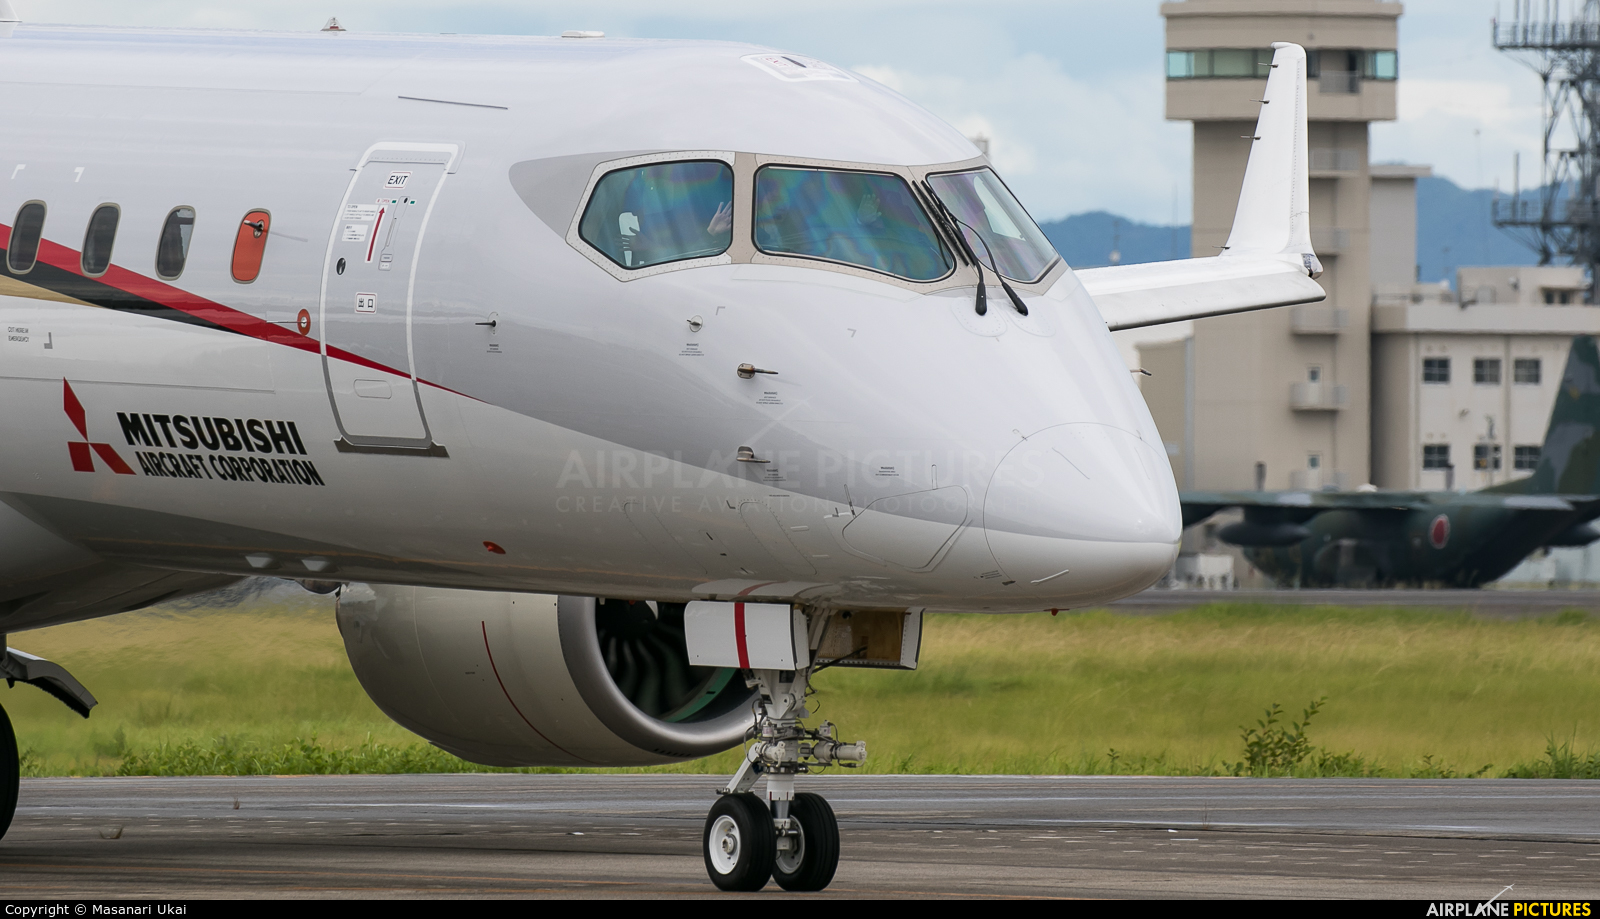 Airline pilot central forums will the mrj fly at skywest for Http pictures